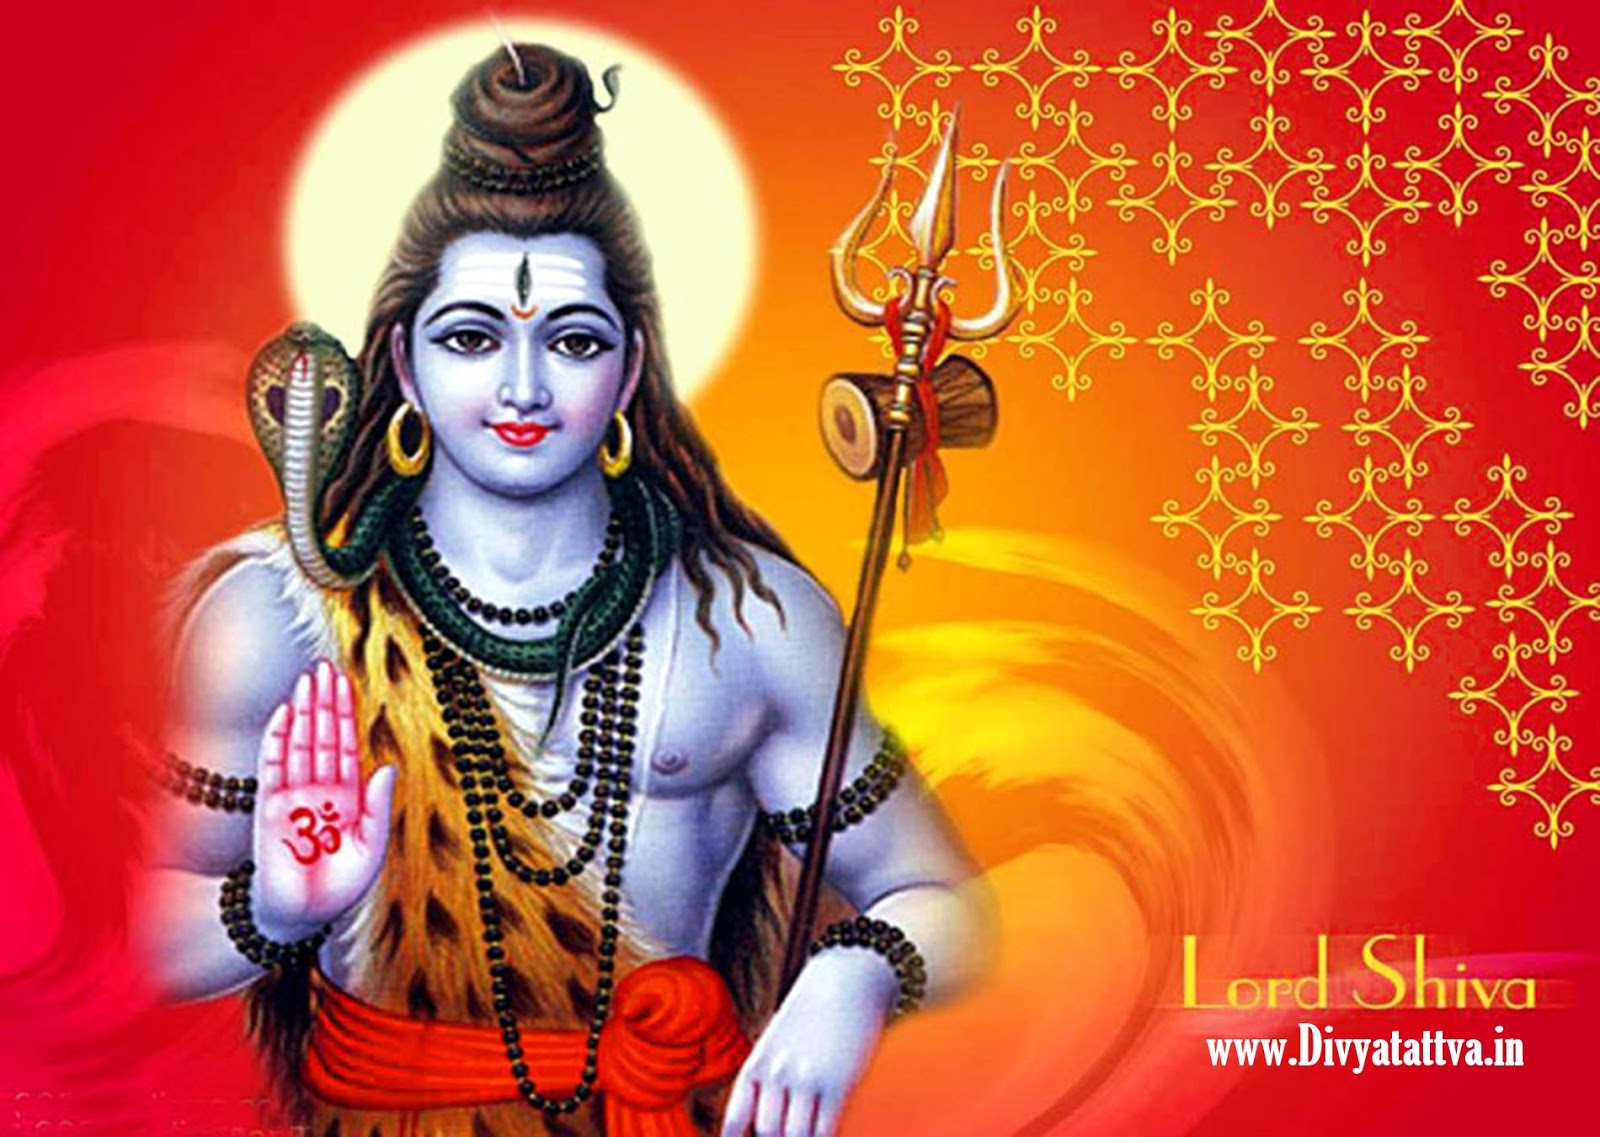 lord shiva images hd background wallpaper 4k www.divyatattva.in